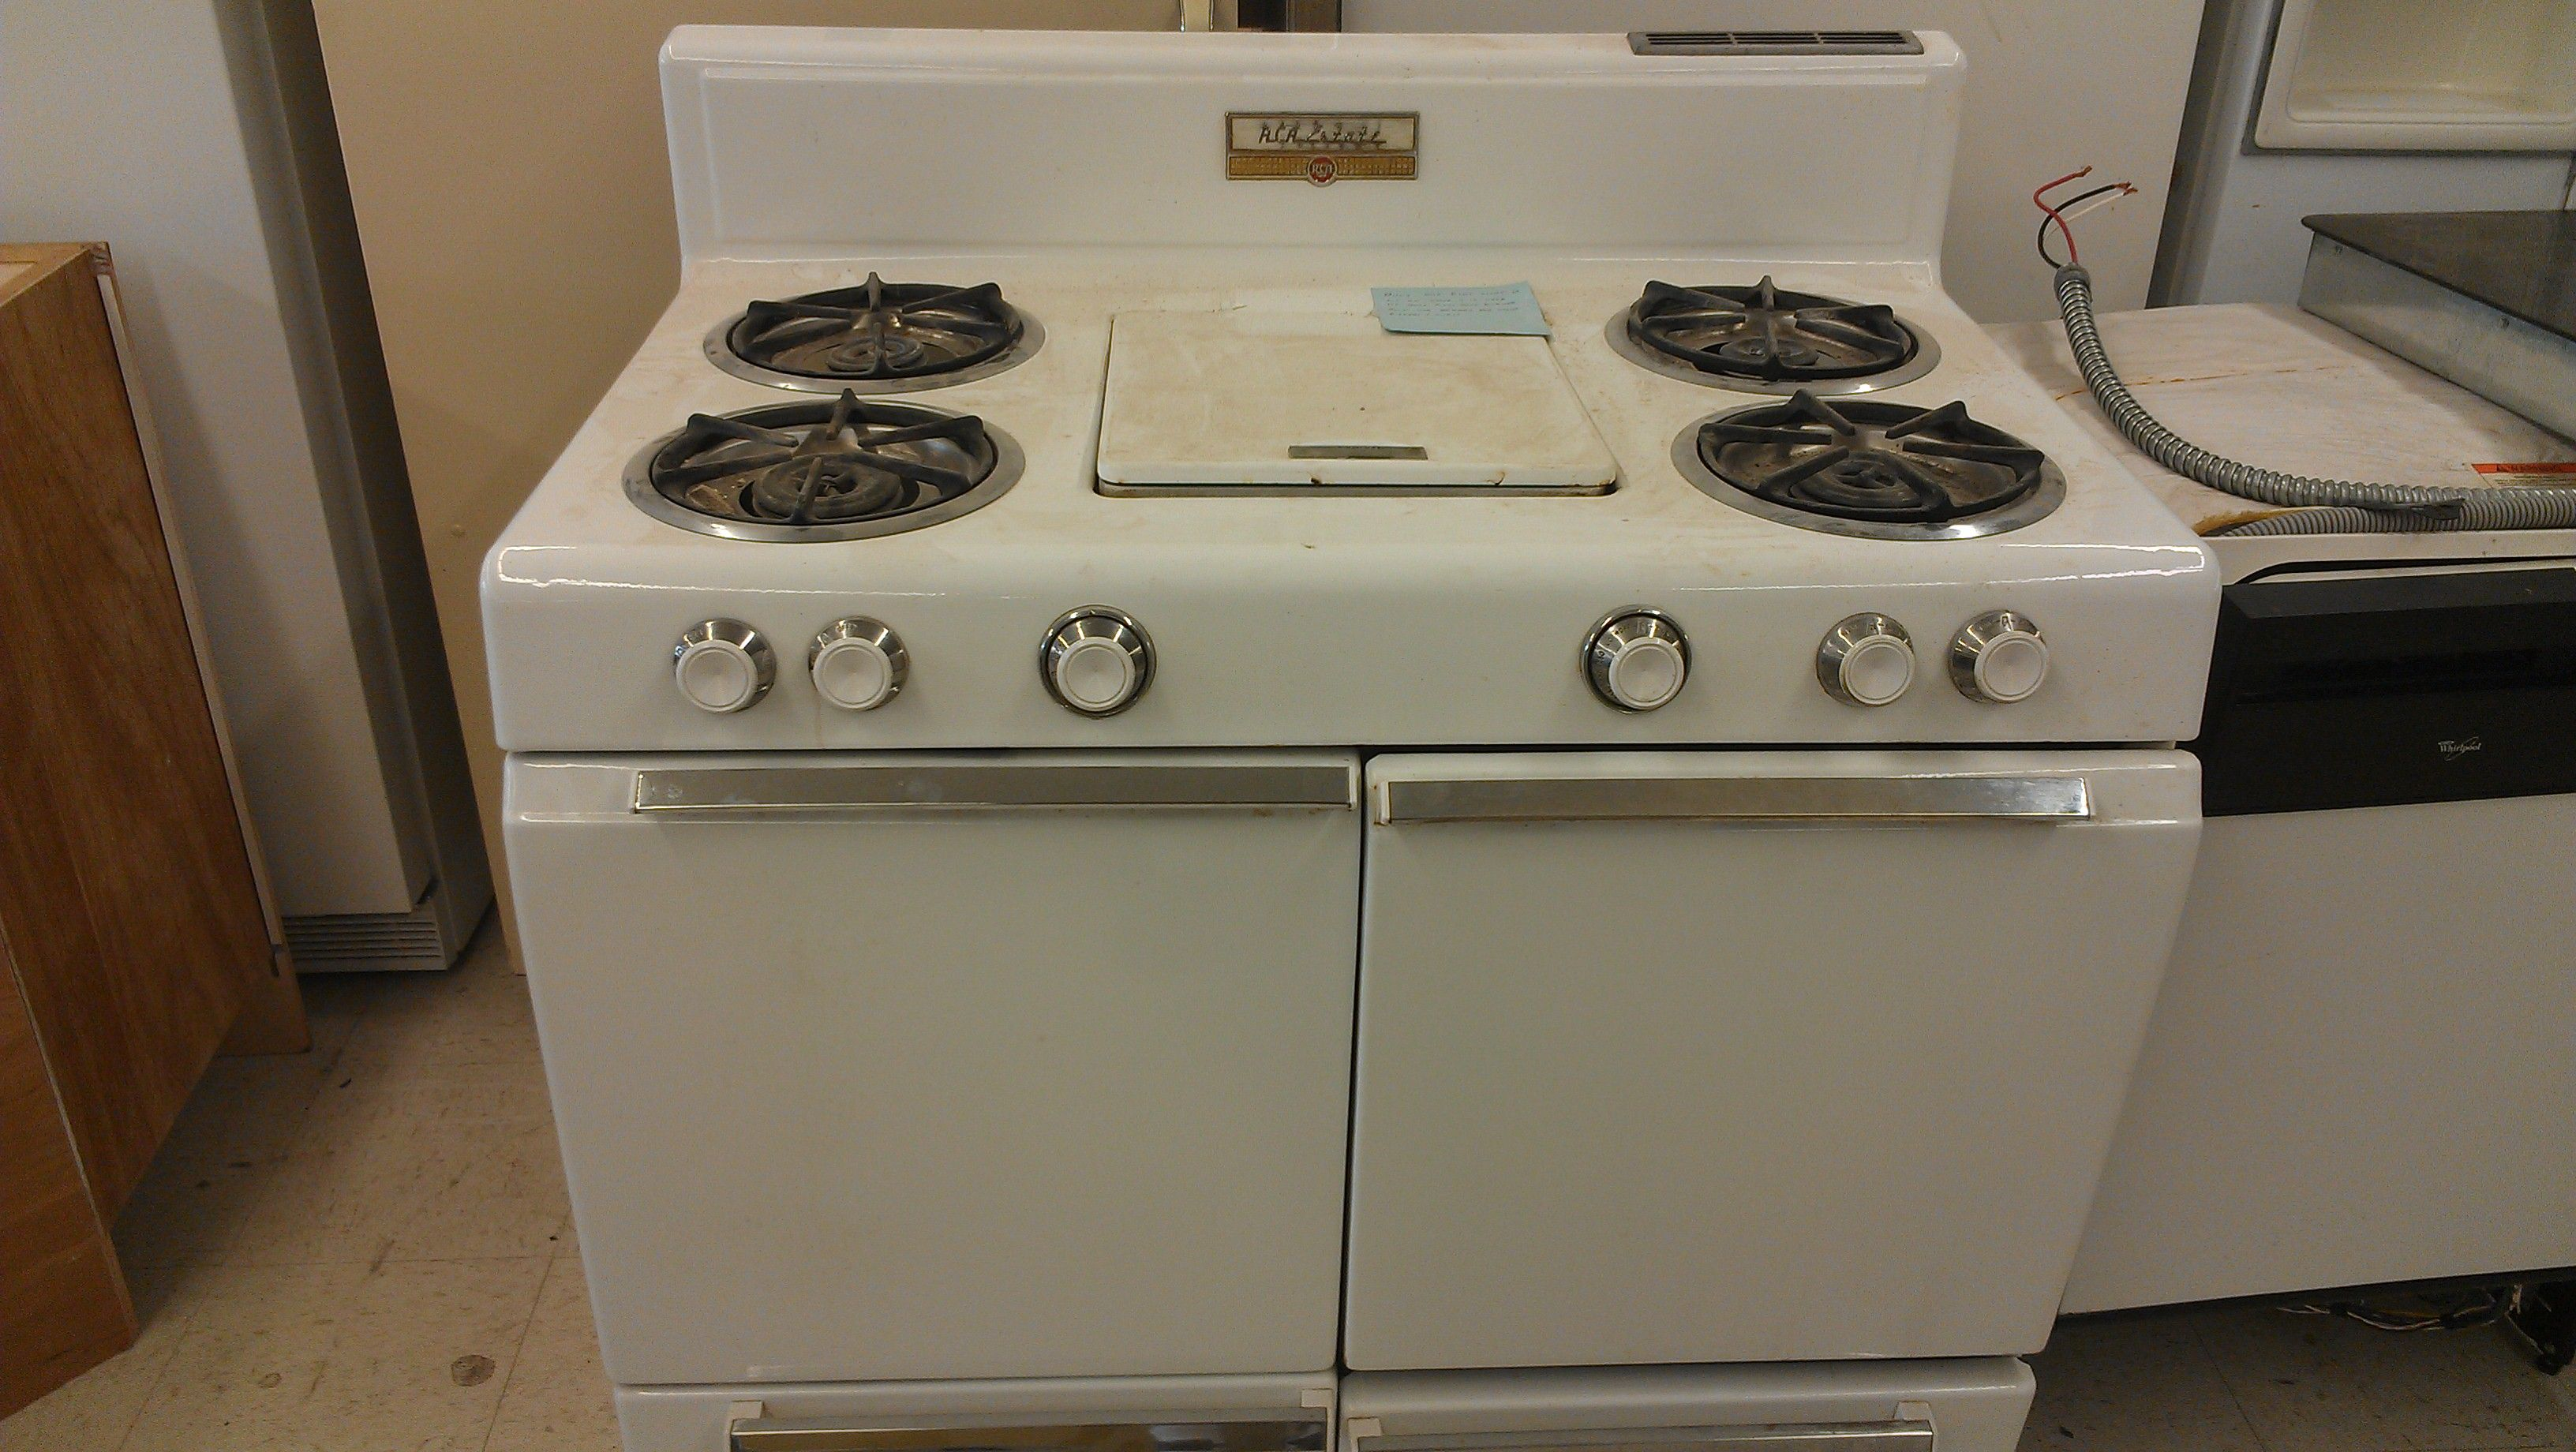 rca estate gas range c 1950s automatic washers refrigerators and